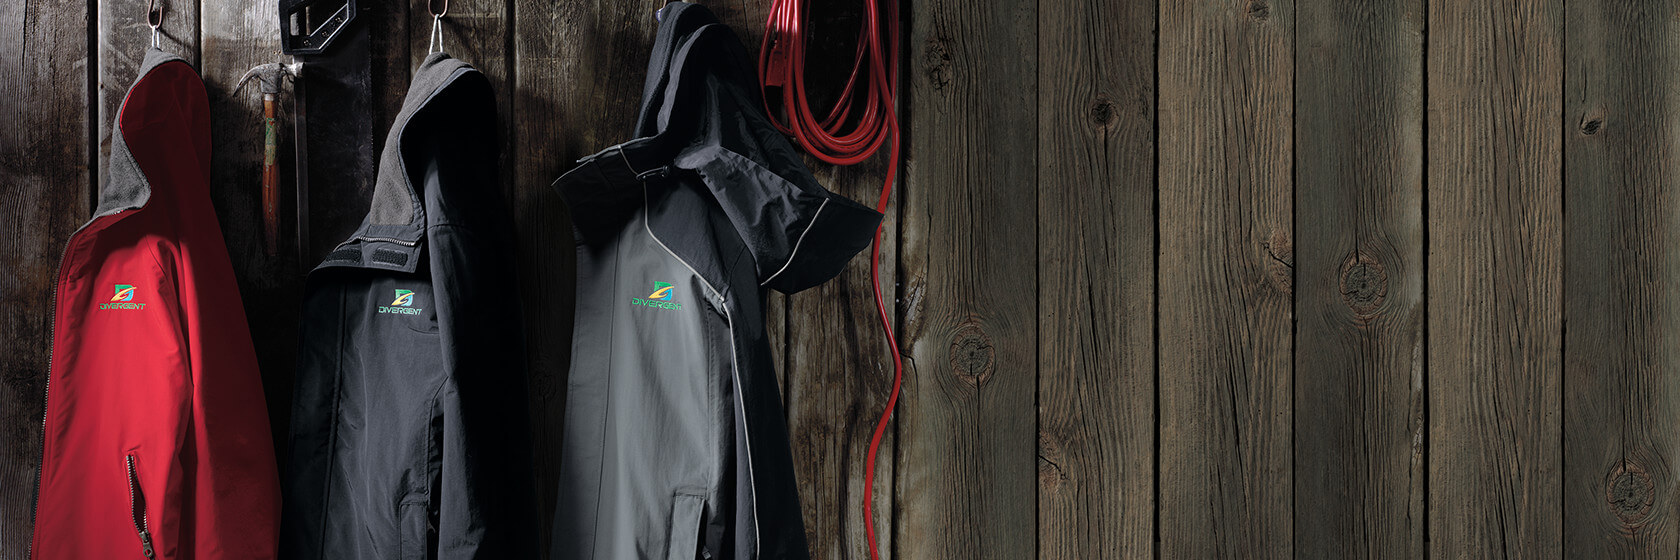 An assortment of durable jackets in a yard shed.